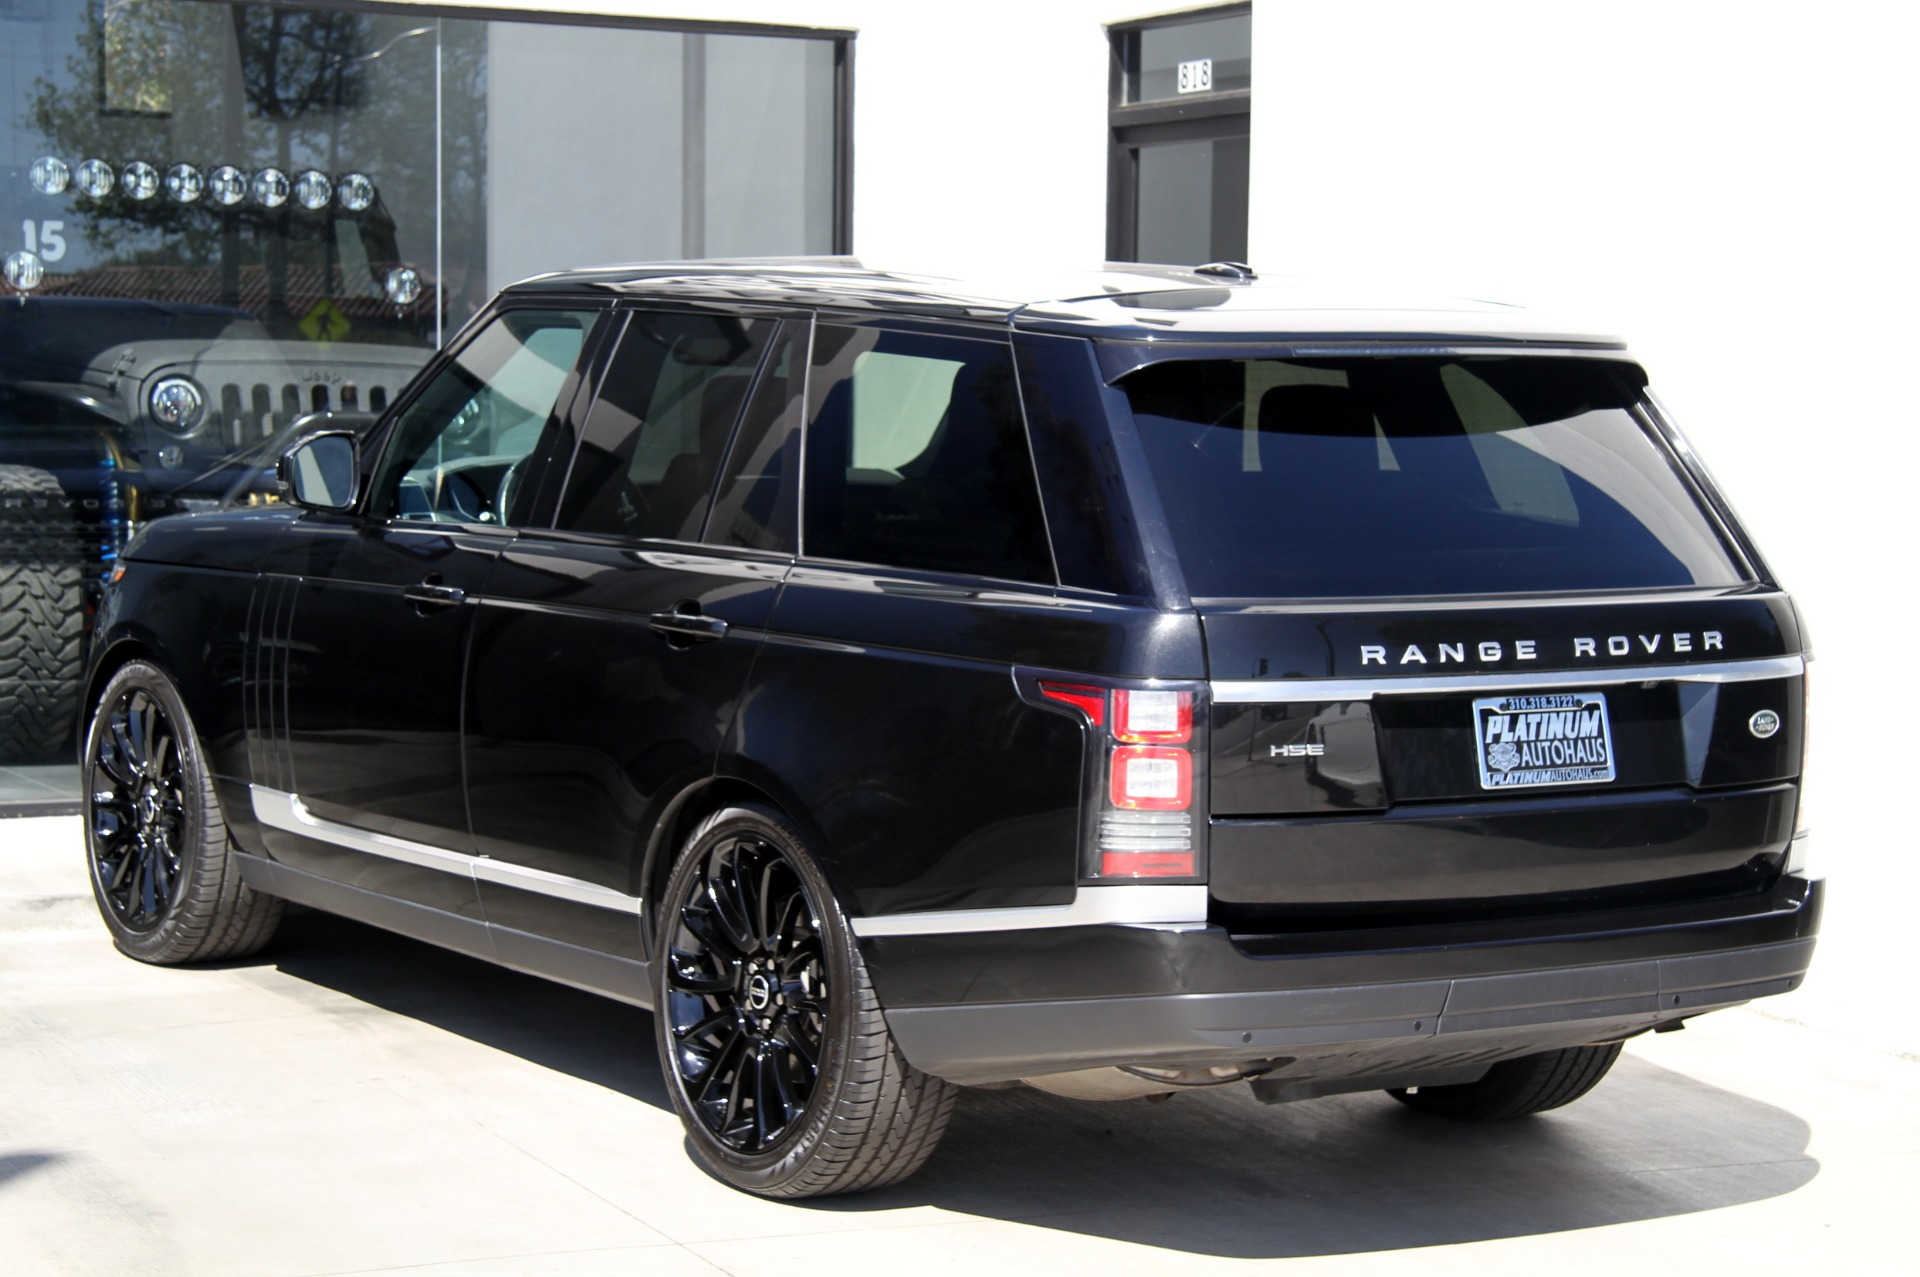 Land Rover For Sale Near Me >> 2015 Land Rover Range Rover HSE Stock # 5972 for sale near ...